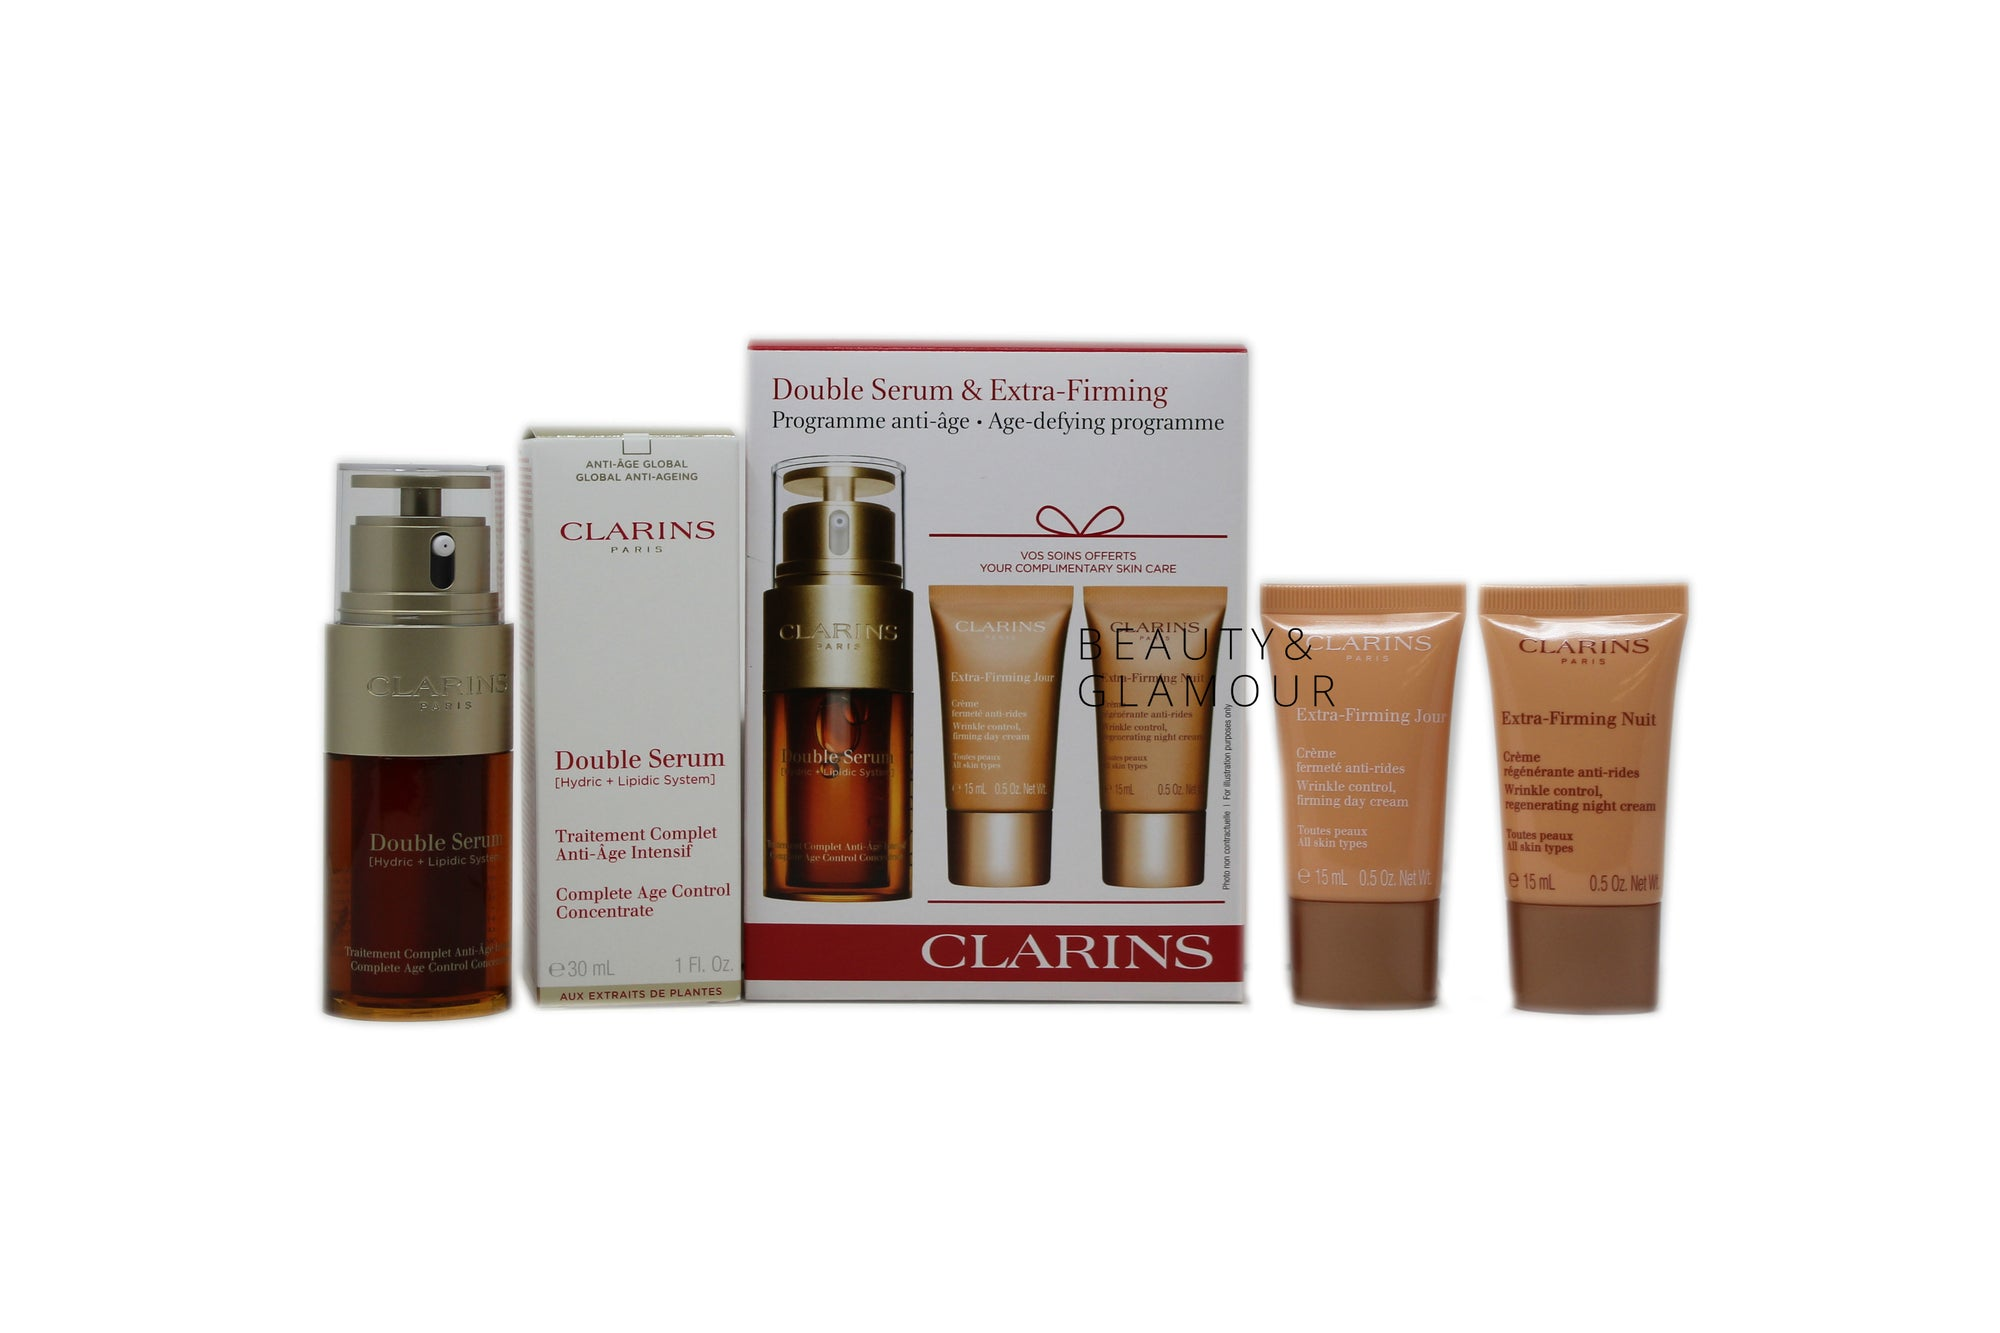 CLARINS DOUBLE SERUM (HYDRIC + LIPIDIC SYSTEM)  COMPLETE AGE CONTROL CONCENTRATE  AVAILABLE SIZE: 30 ML/1 FL.OZ.  BENEFITS:  VISIBLY REDUCES WRINKLES AND PROMOTES SKIN FIRMNESS REVIVES RADIANCE HYDRATES AND SMOOTHES VISIBLY TIGHTENS PORES YOUR COMPLIMENTARY SKIN CARE:  CLARINS EXTRA FIRMING JOUR WRINKLE CONTROL, FIRMING DAY CREAM ALL SKIN TYPES AVAILABLE SIZE: 15 ML/0.5 OZ. CLARINS EXTRA FIRMING NUIT WRINKLE CONTROL, REGENERATING NIGHT CREAM ALL SKIN TYPES AVAILABLE SIZE: 15 ML/0.5 OZ.